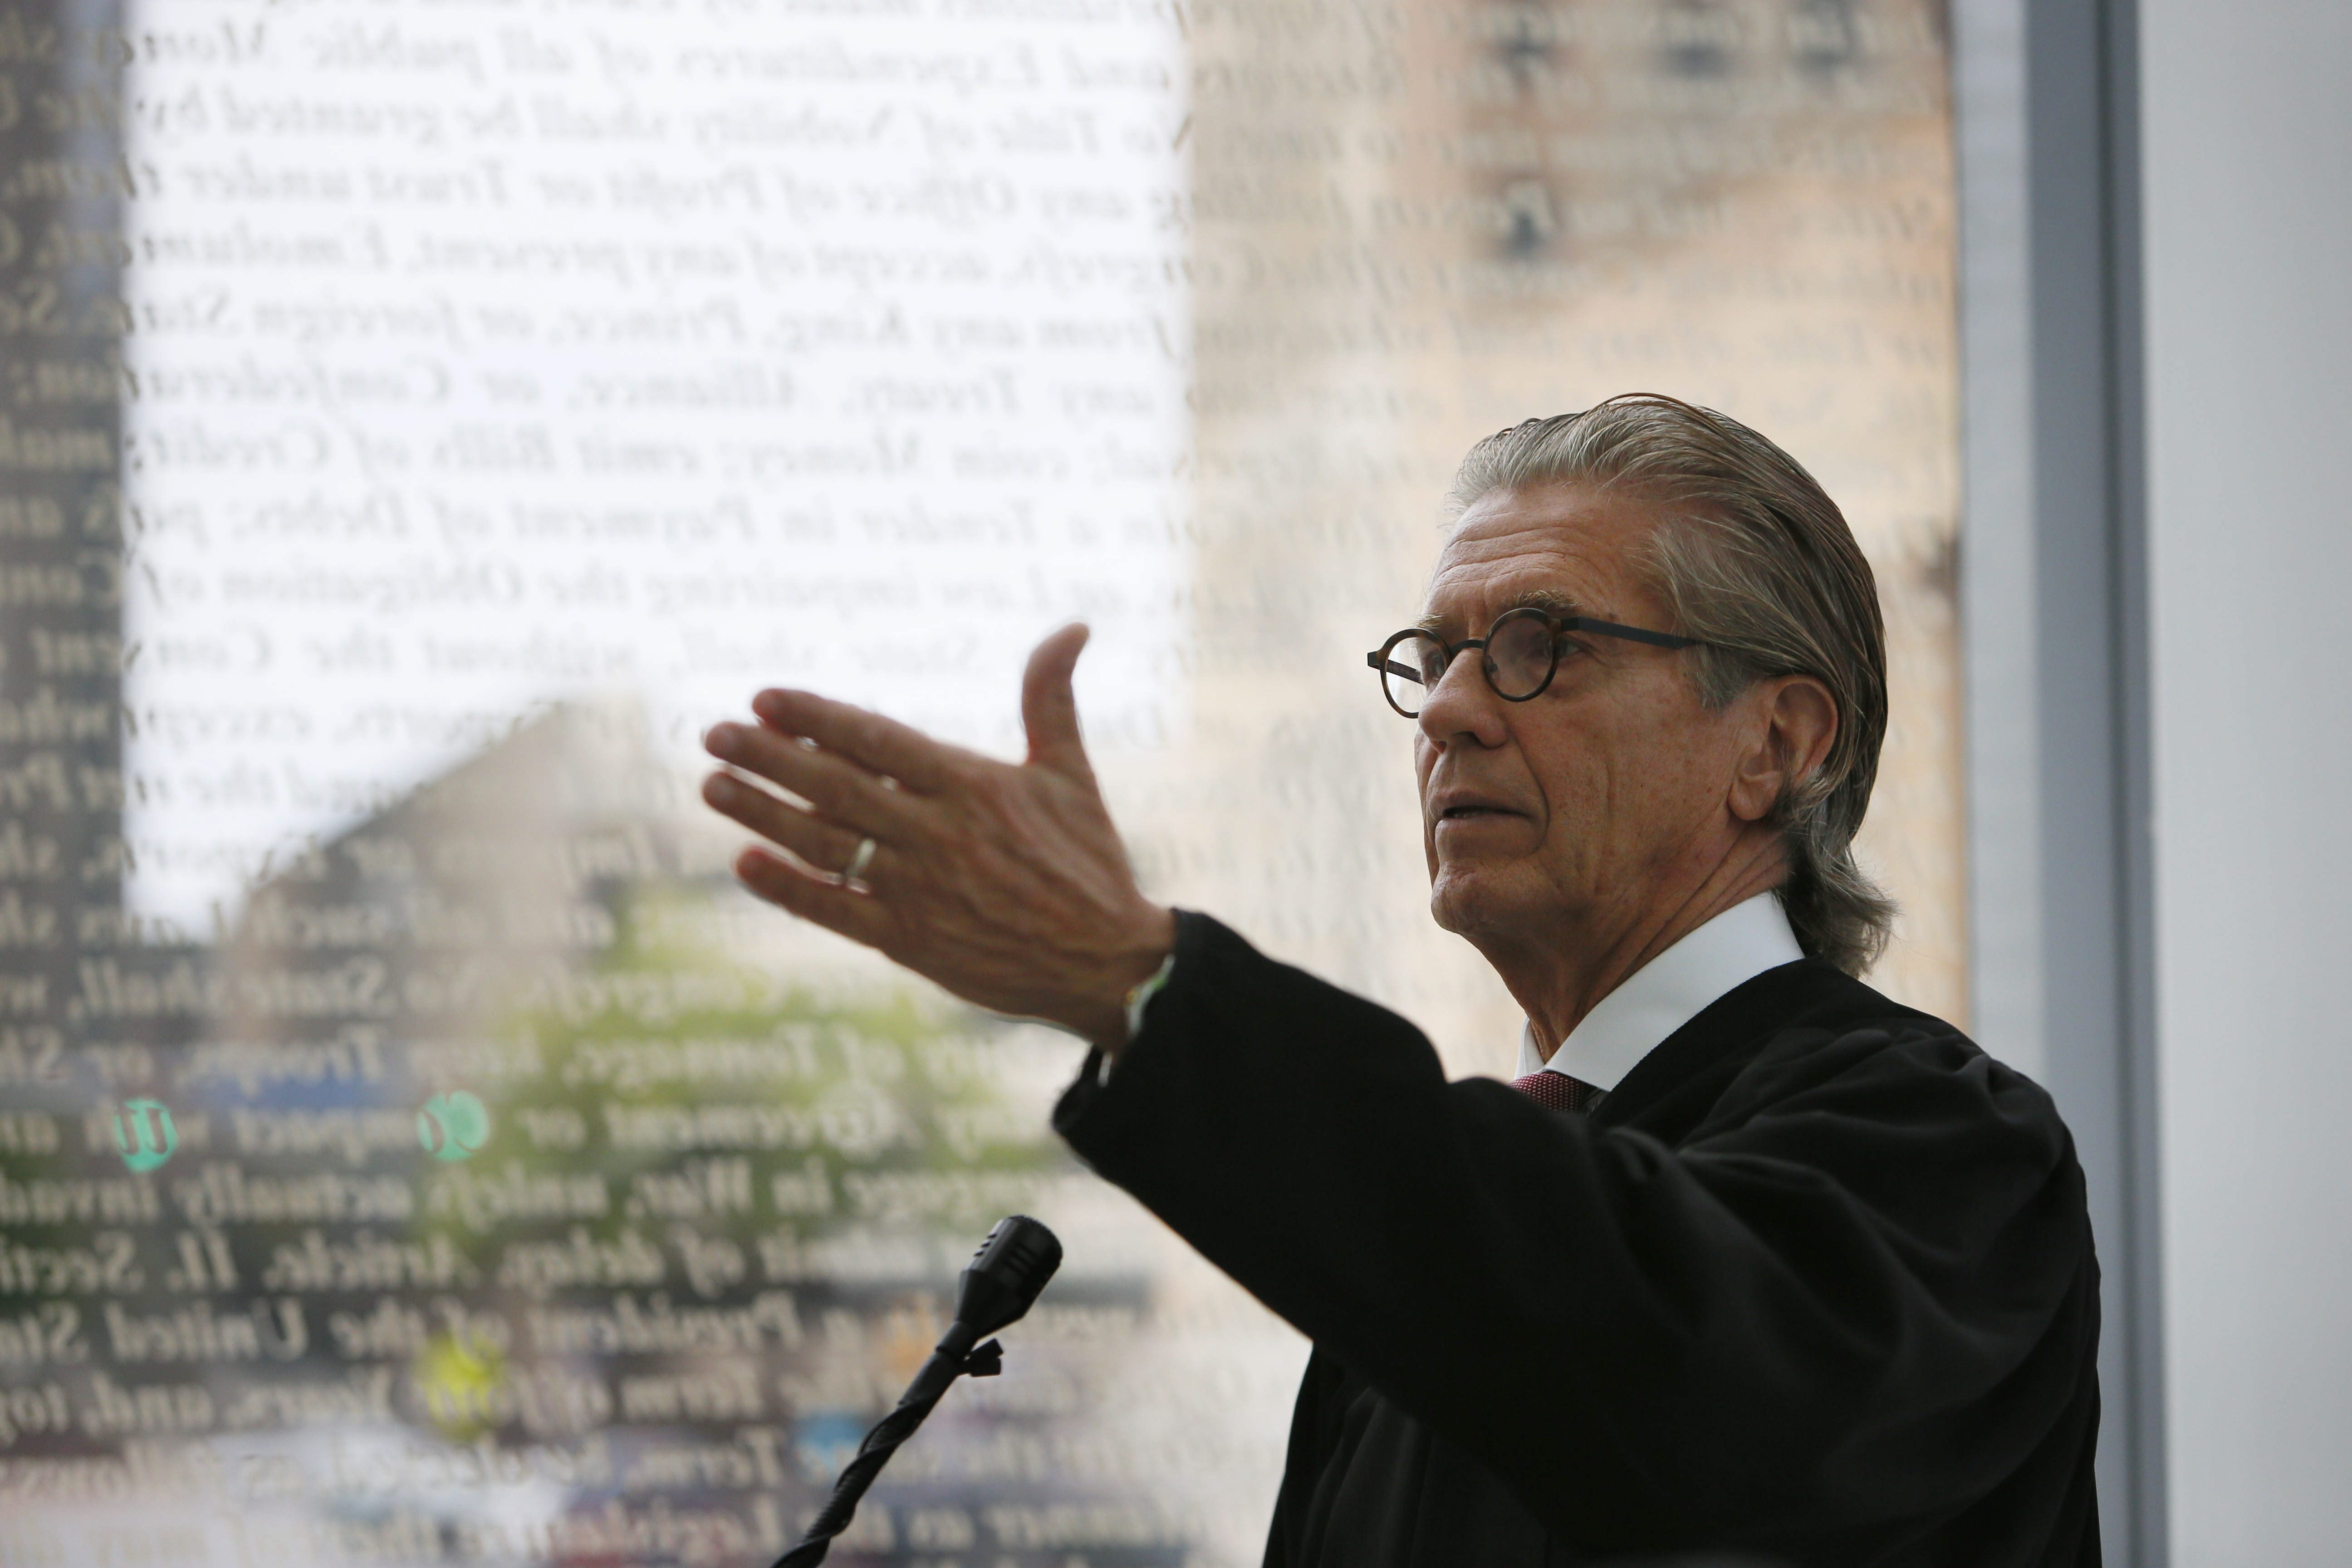 Chief U.S. Judge William M. Skretny was instrumental in the construction of the new courthouse on Niagara Square. (Buffalo News file photo)